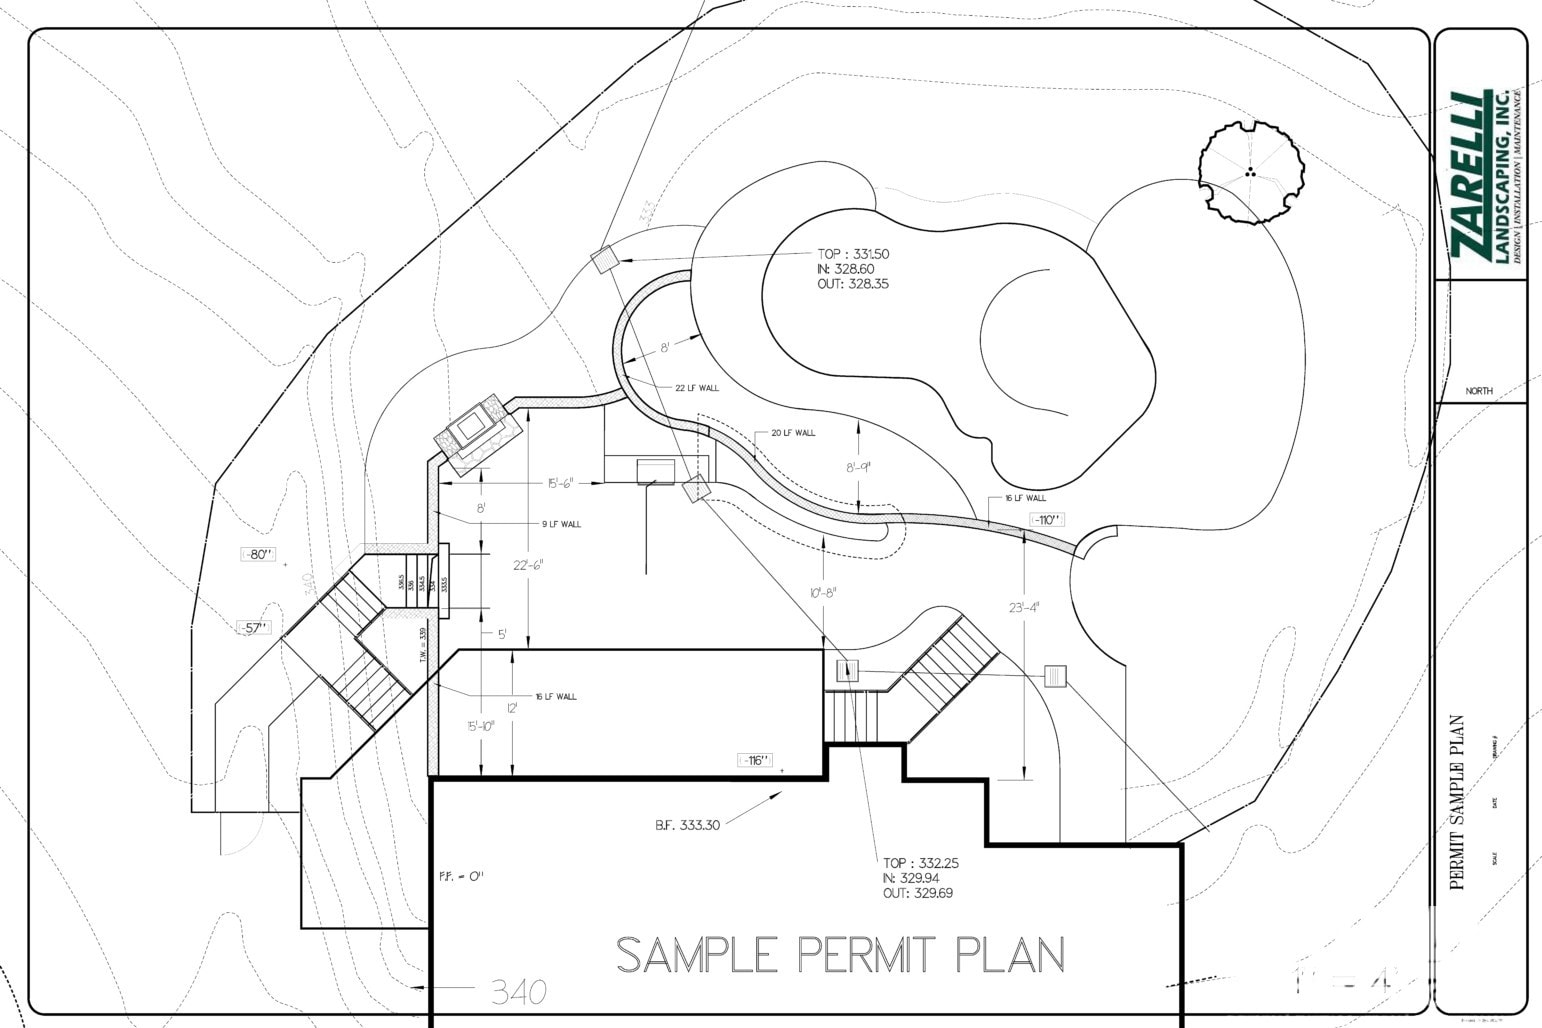 design PERMIT PLAN